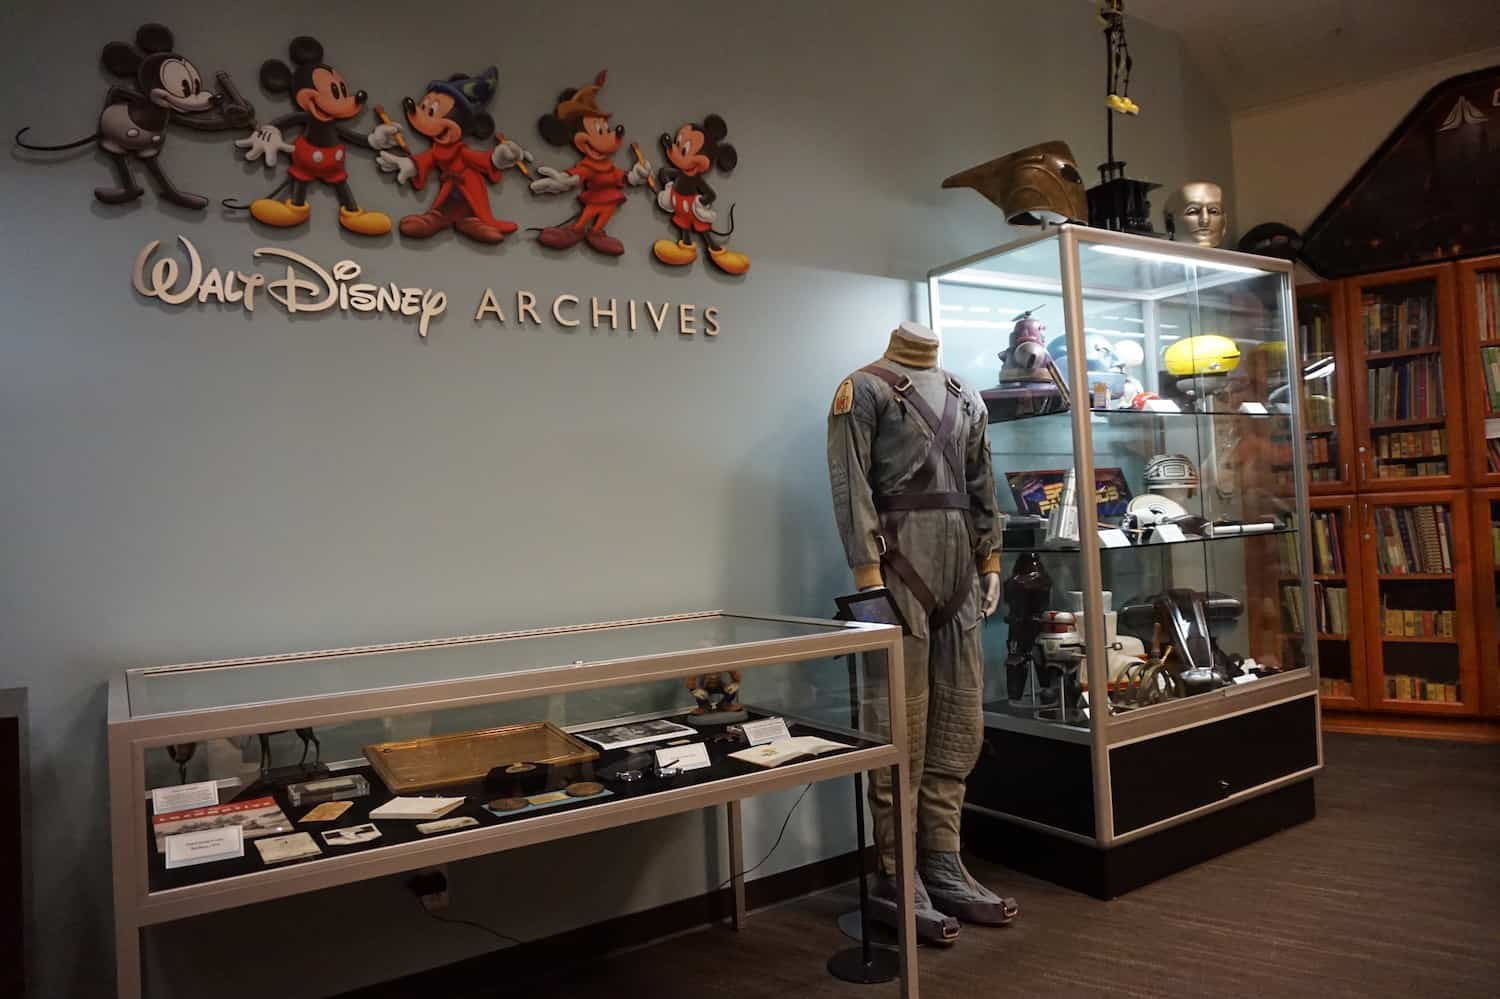 Walt Disney Archives Display 1 5 Minutes For Mom